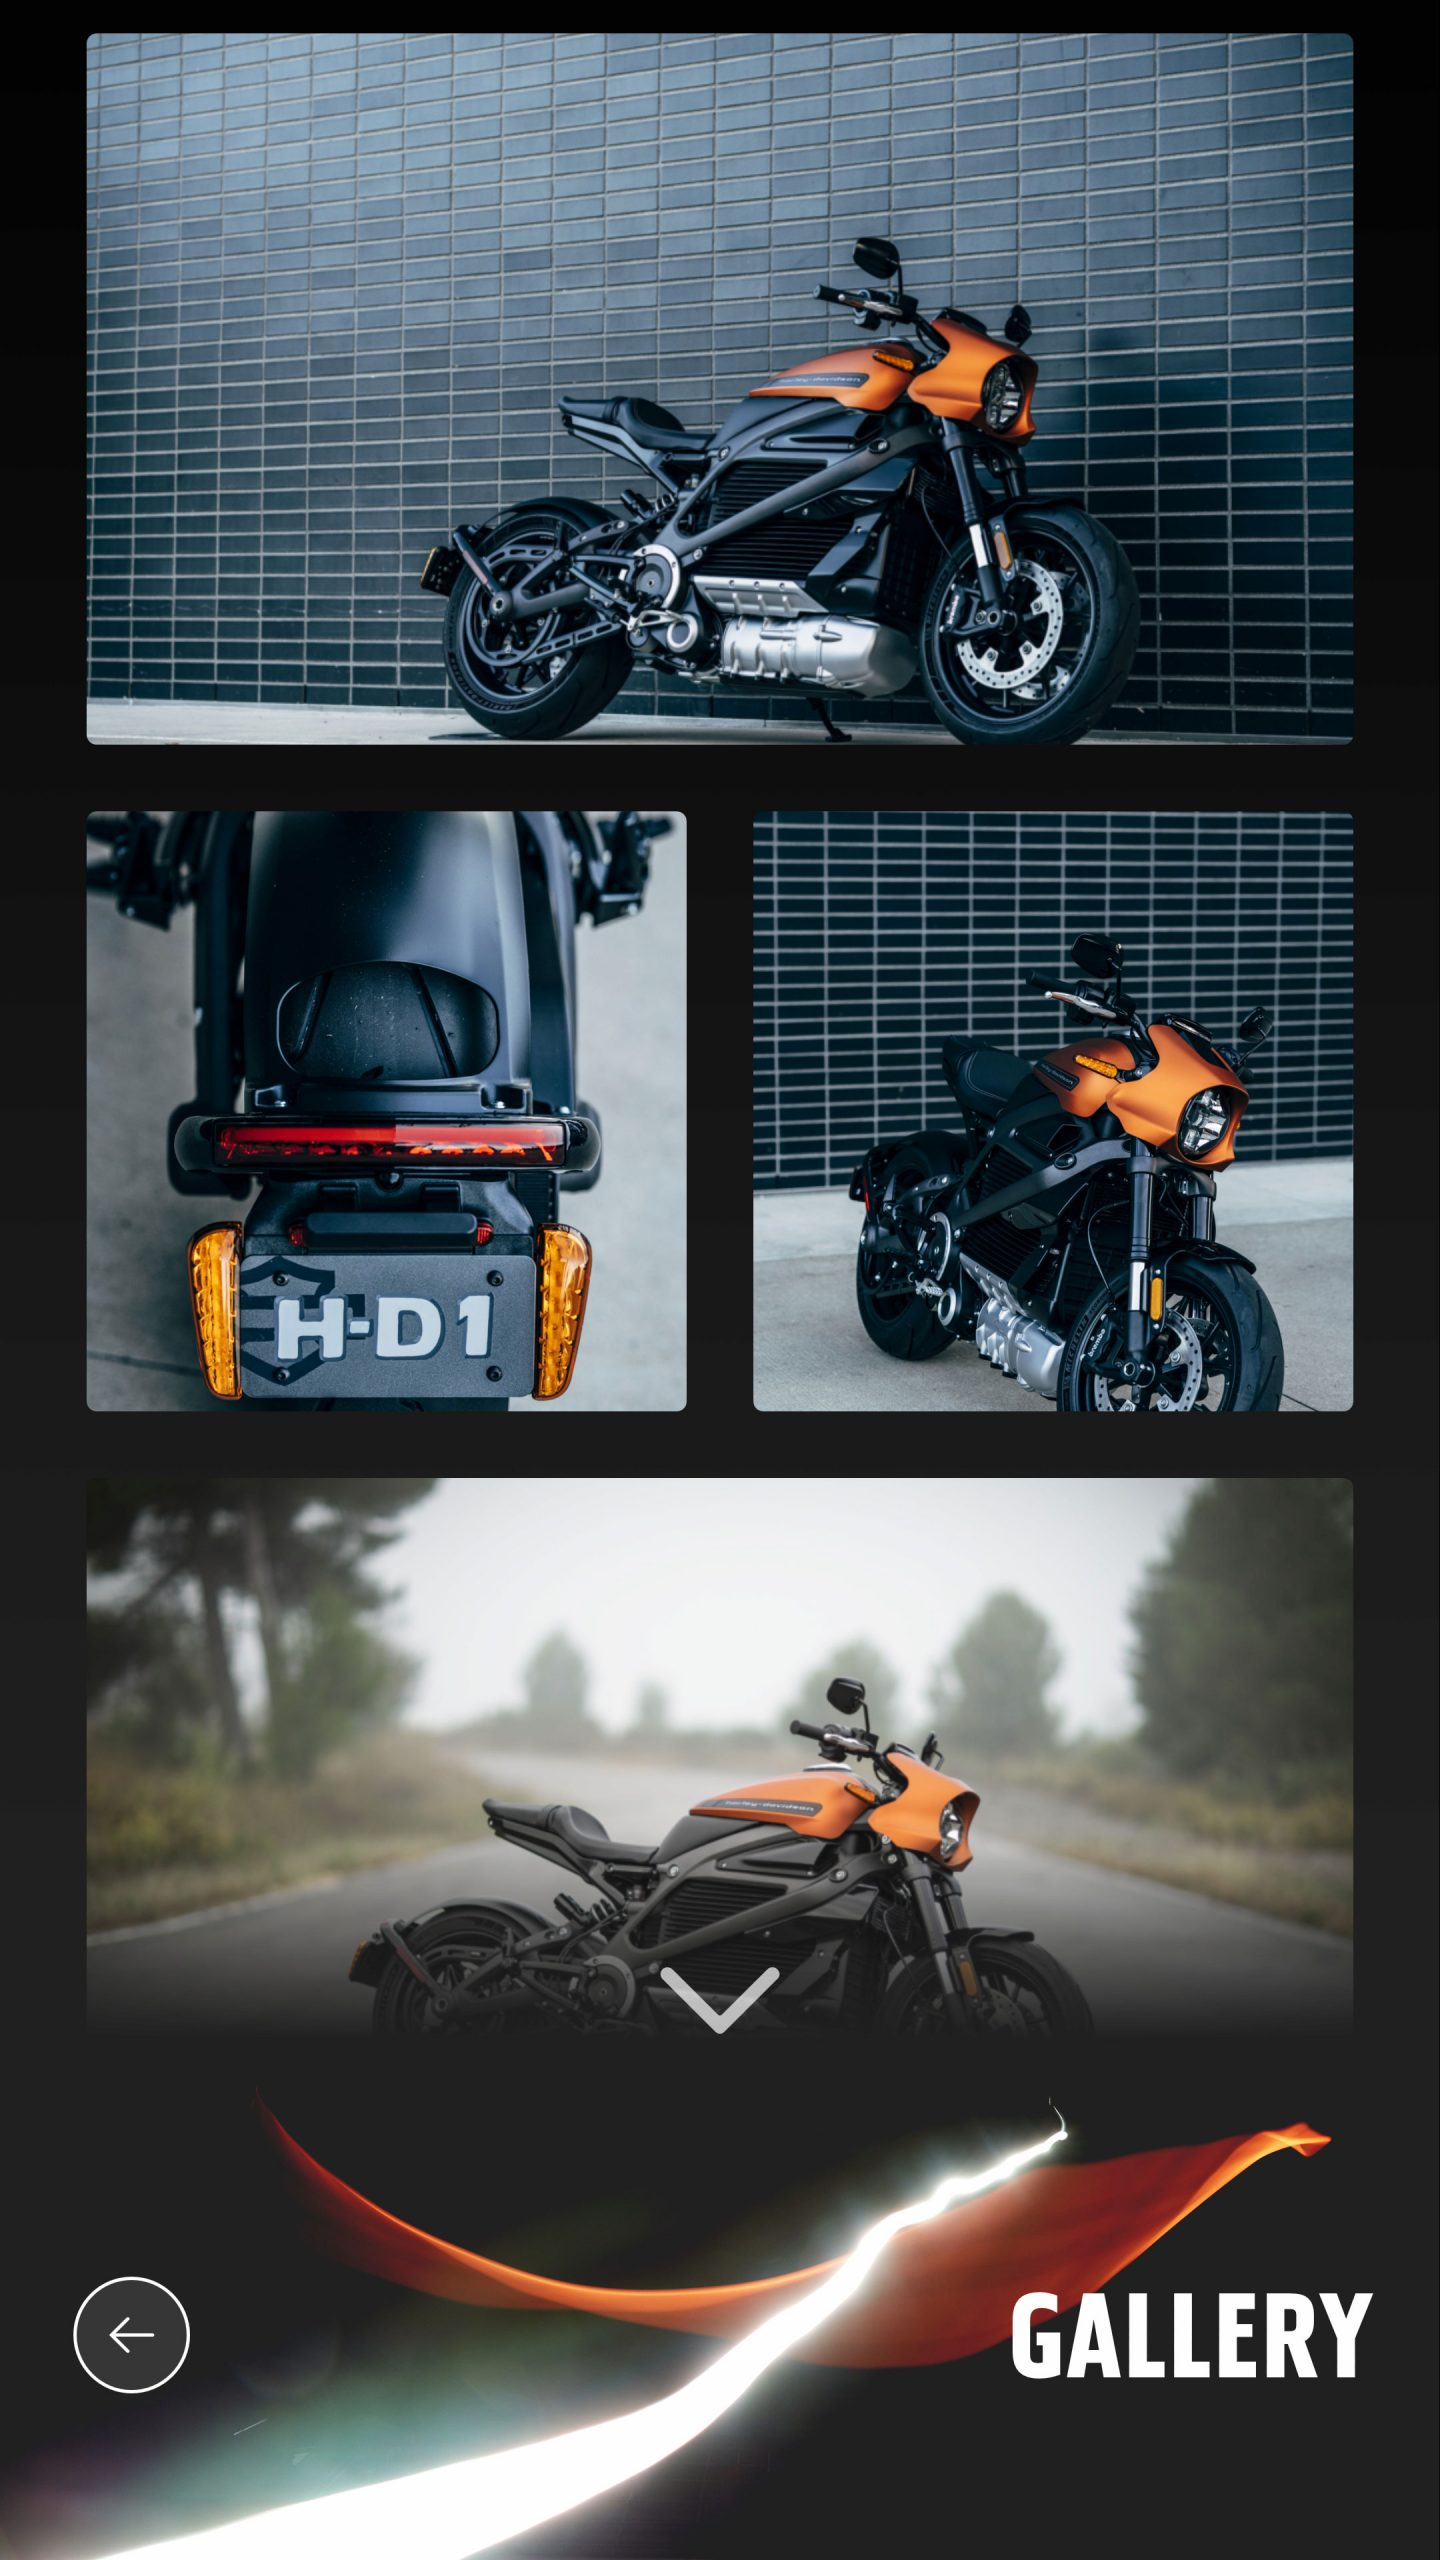 Harley-Davidson Gallery View screenshot